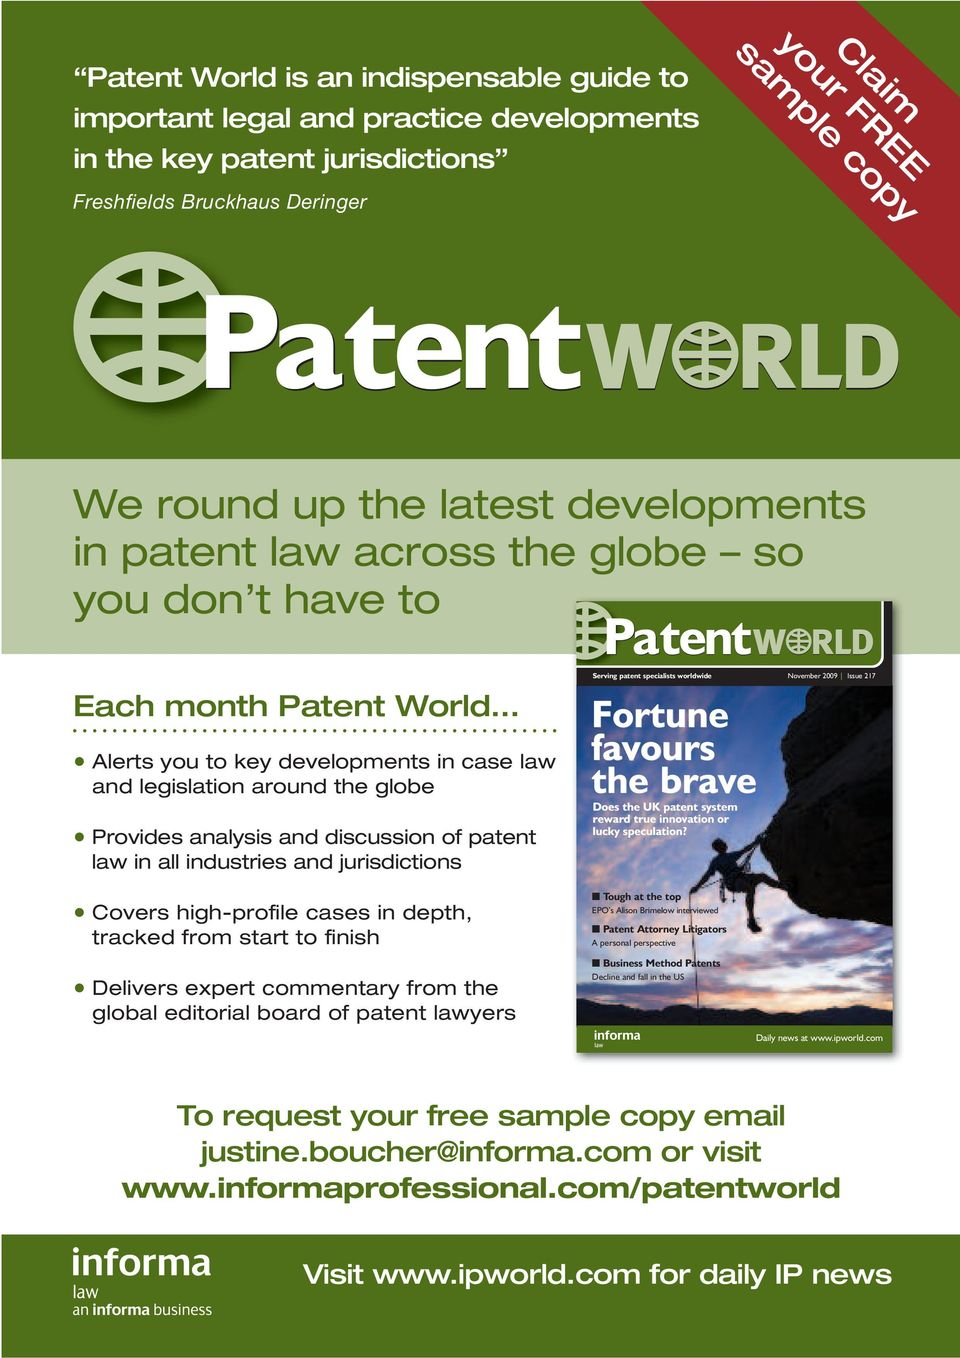 of patent law in all industries and jurisdictions Serving patent specialists worldwide November 2009 Issue 217 Fortune favours the brave Does the UK patent system reward true innovation or lucky